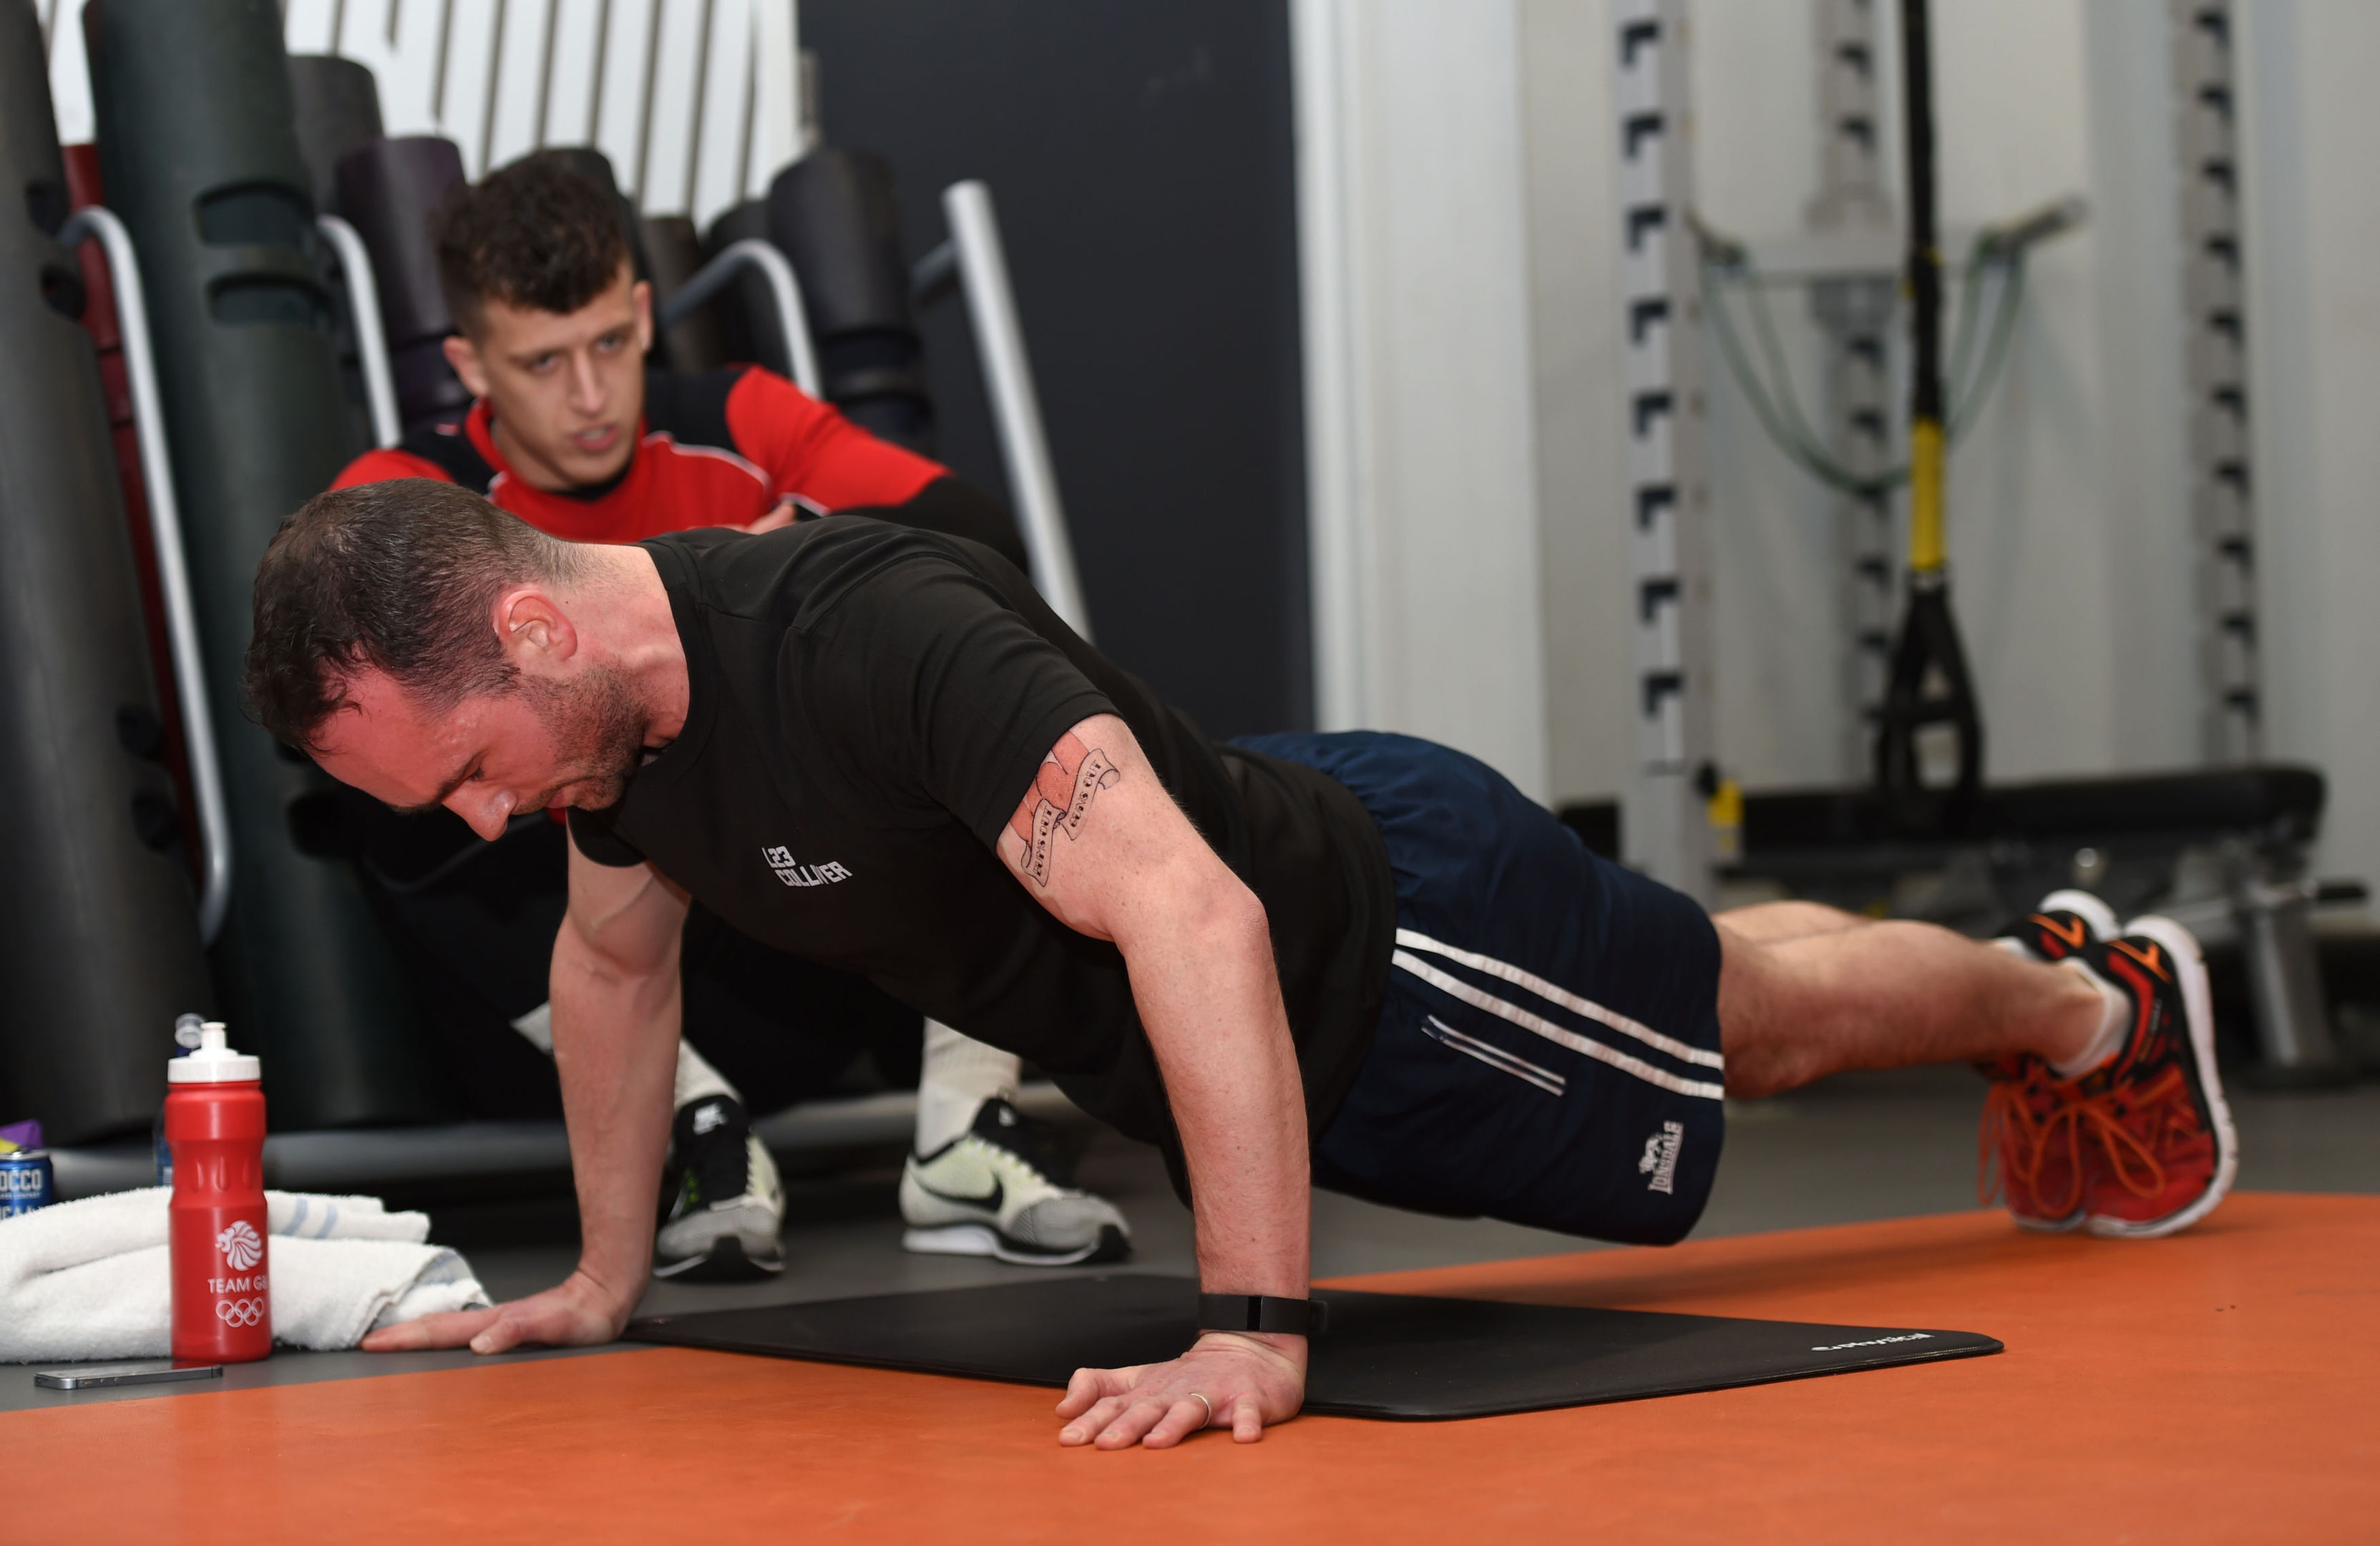 Ed Corrie, from the Bums Out Guns Out campaign group, during an attempt to break the press-ups world record at Oxford Circus Fitness First, London.